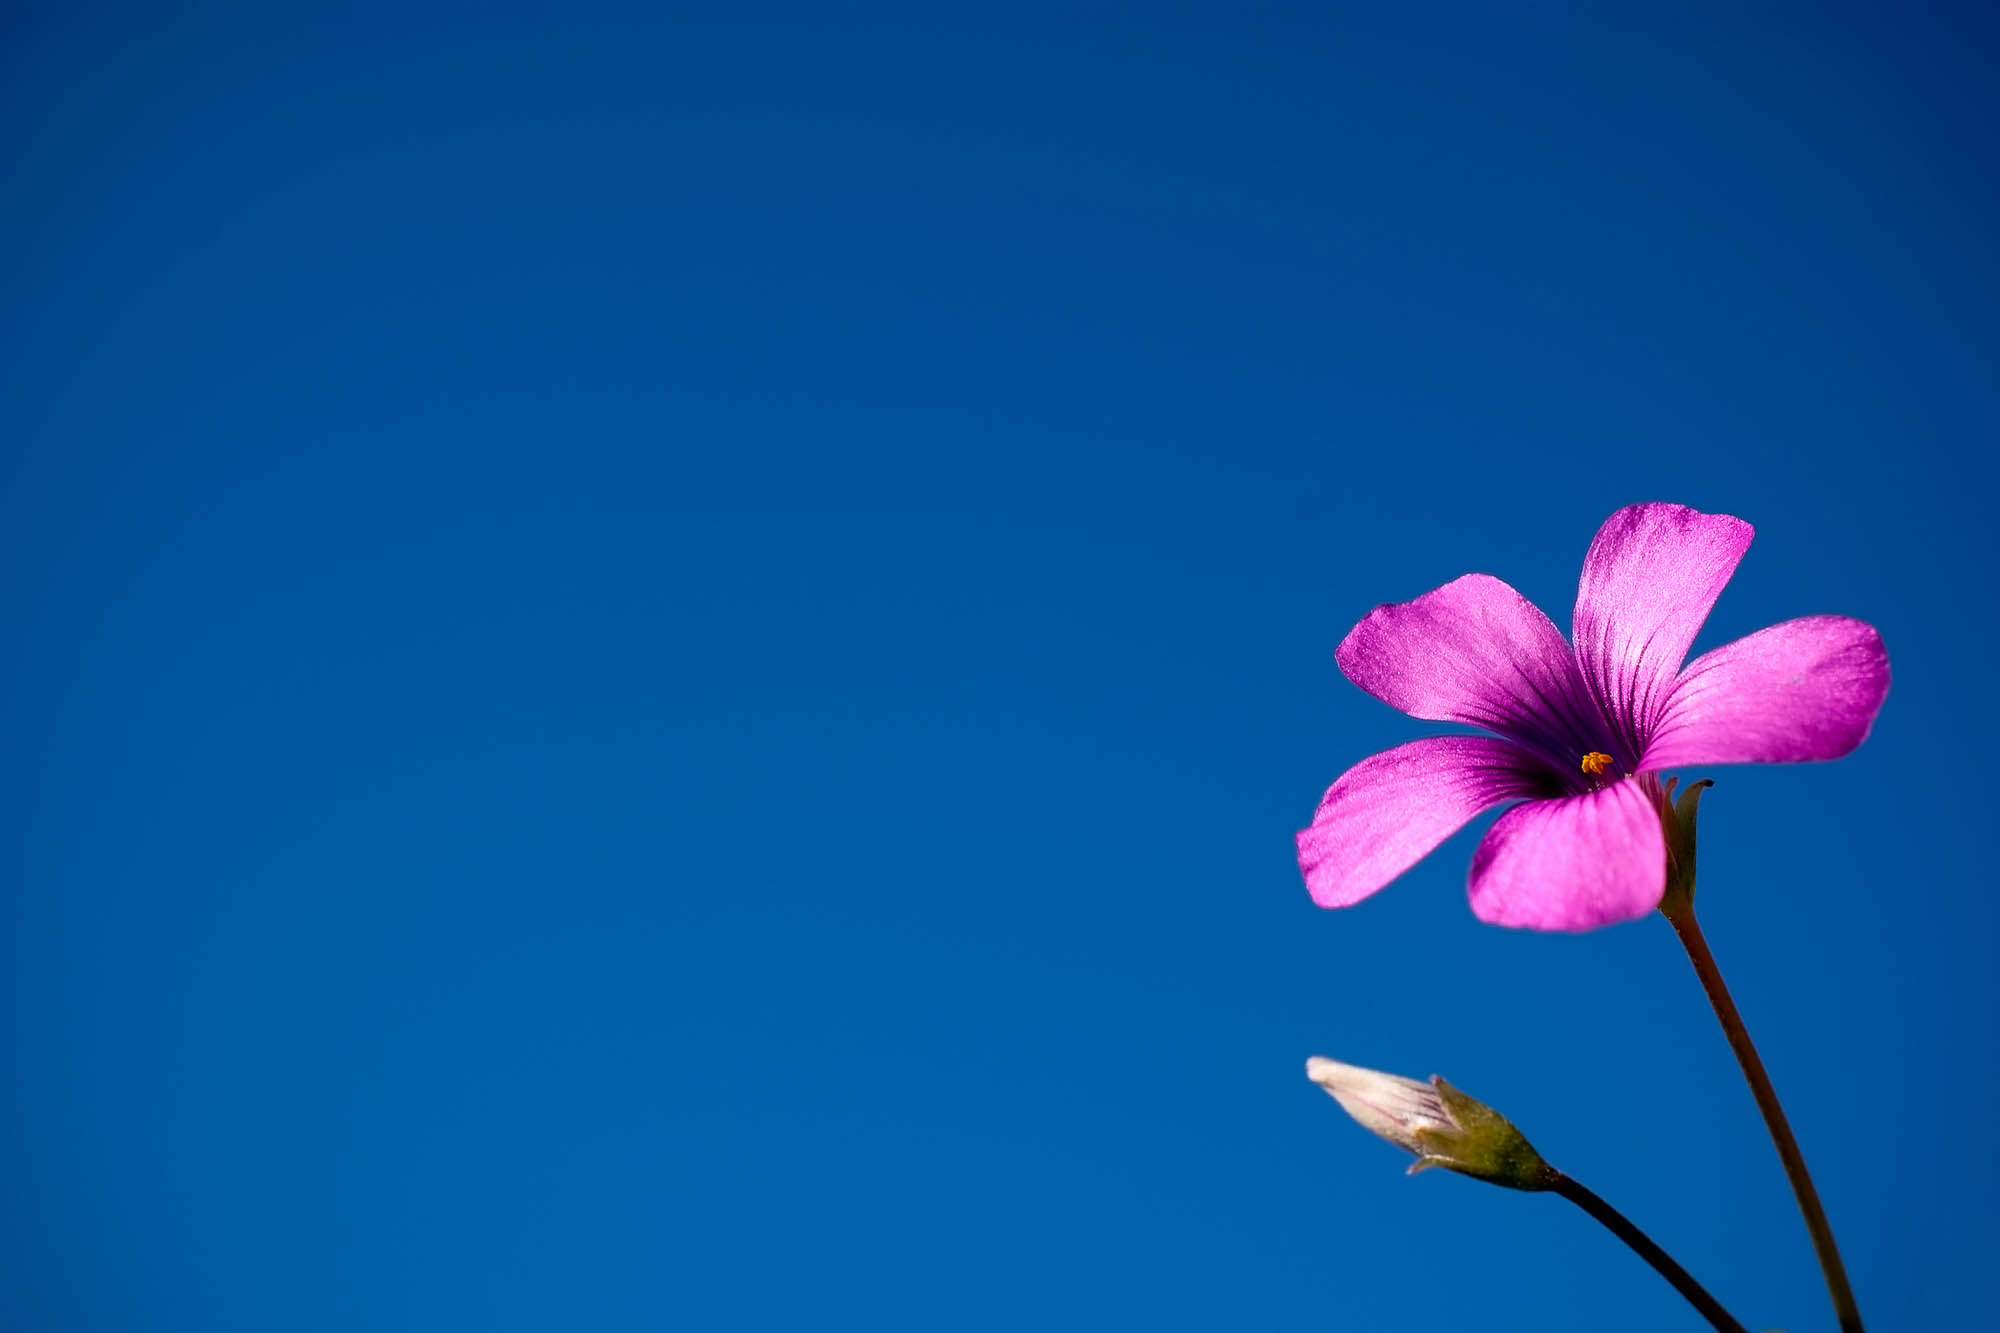 A purple flower against a clear blue sky in the summer